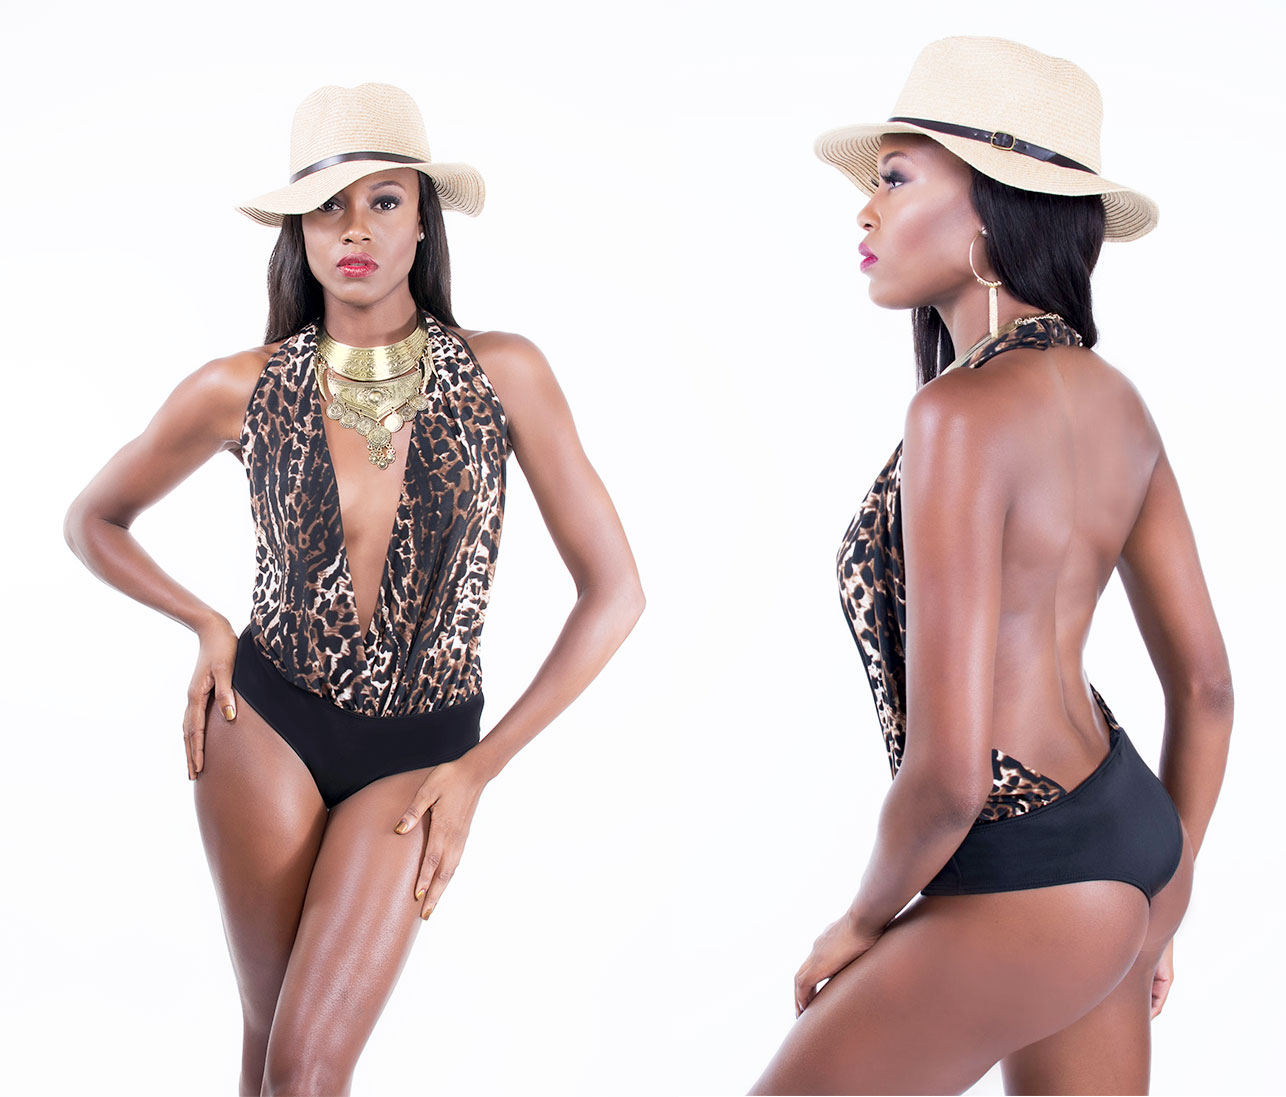 trinidad-fashion-photographer